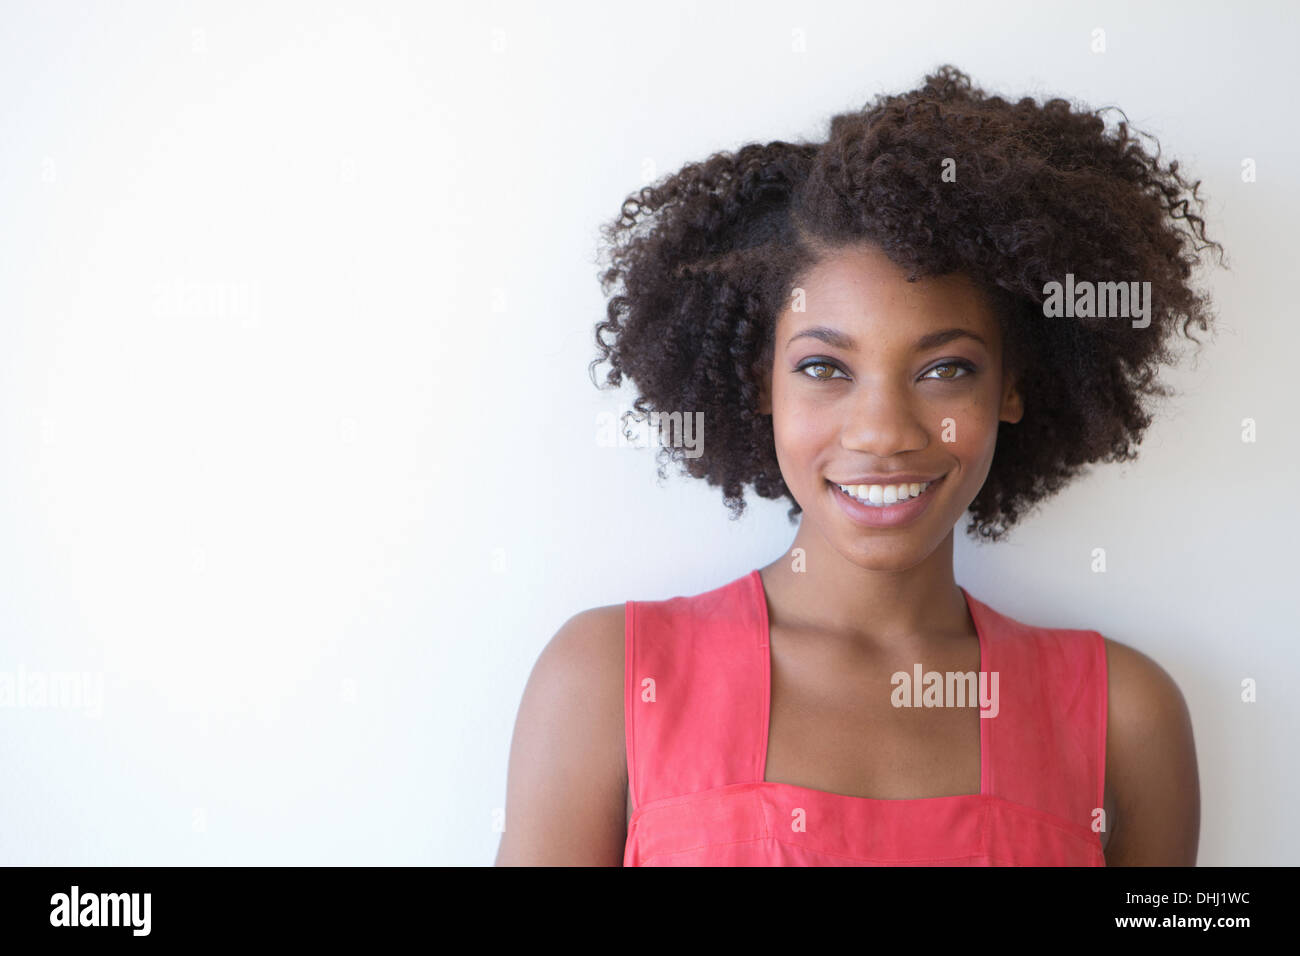 Portrait of young woman against white background Stock Photo